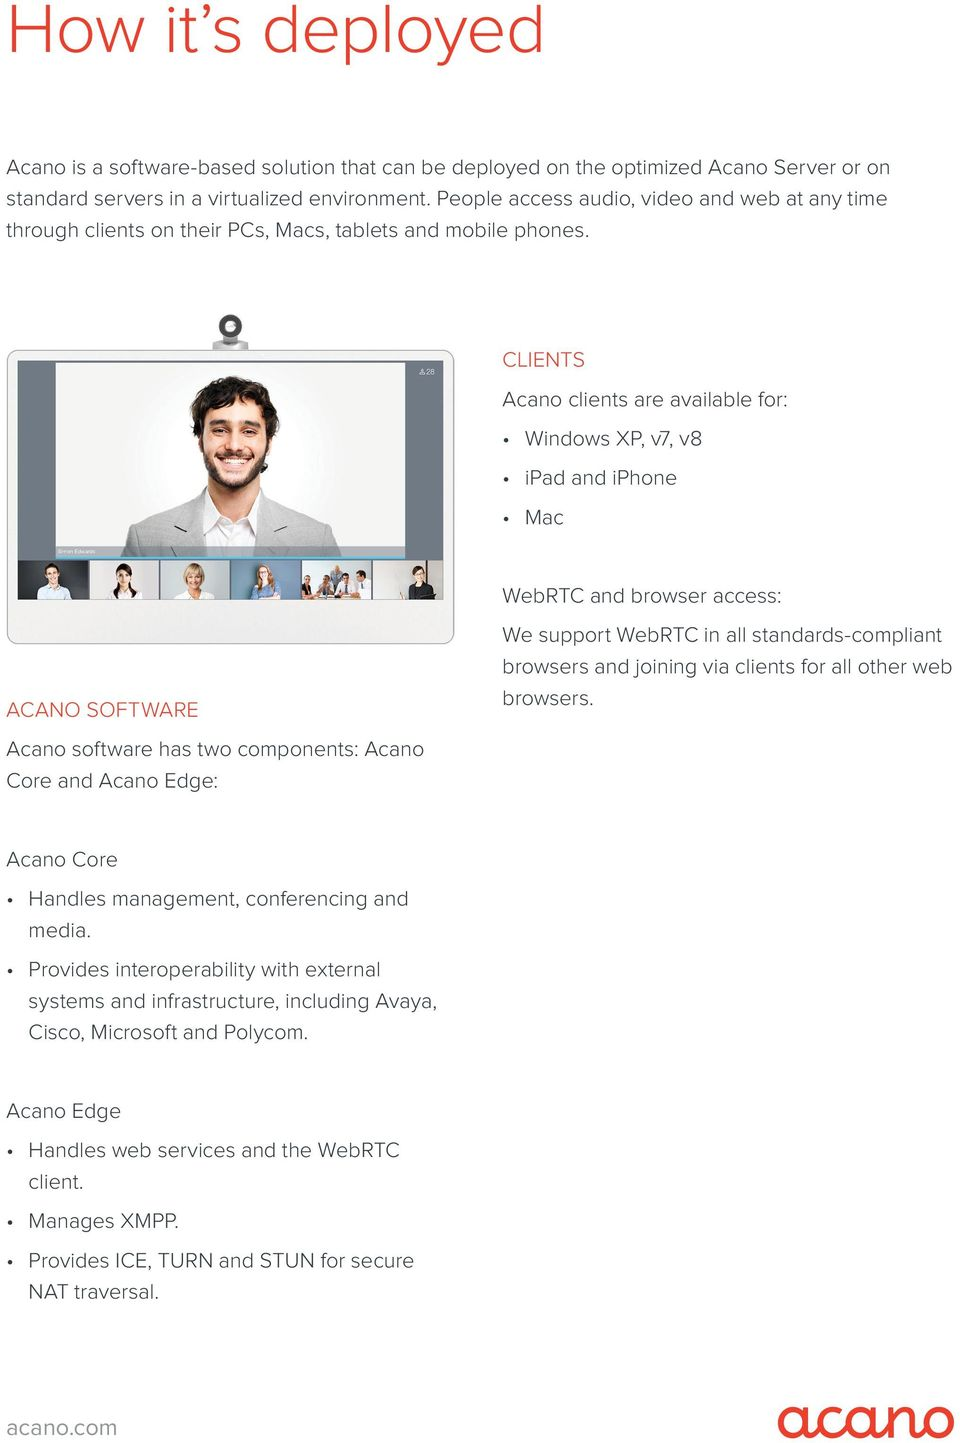 CLIENTS Acano clients are available for: Windows XP, v7, v8 ipad and iphone Mac WebRTC and browser access: ACANO SOFTWARE We support WebRTC in all standards-compliant browsers and joining via clients